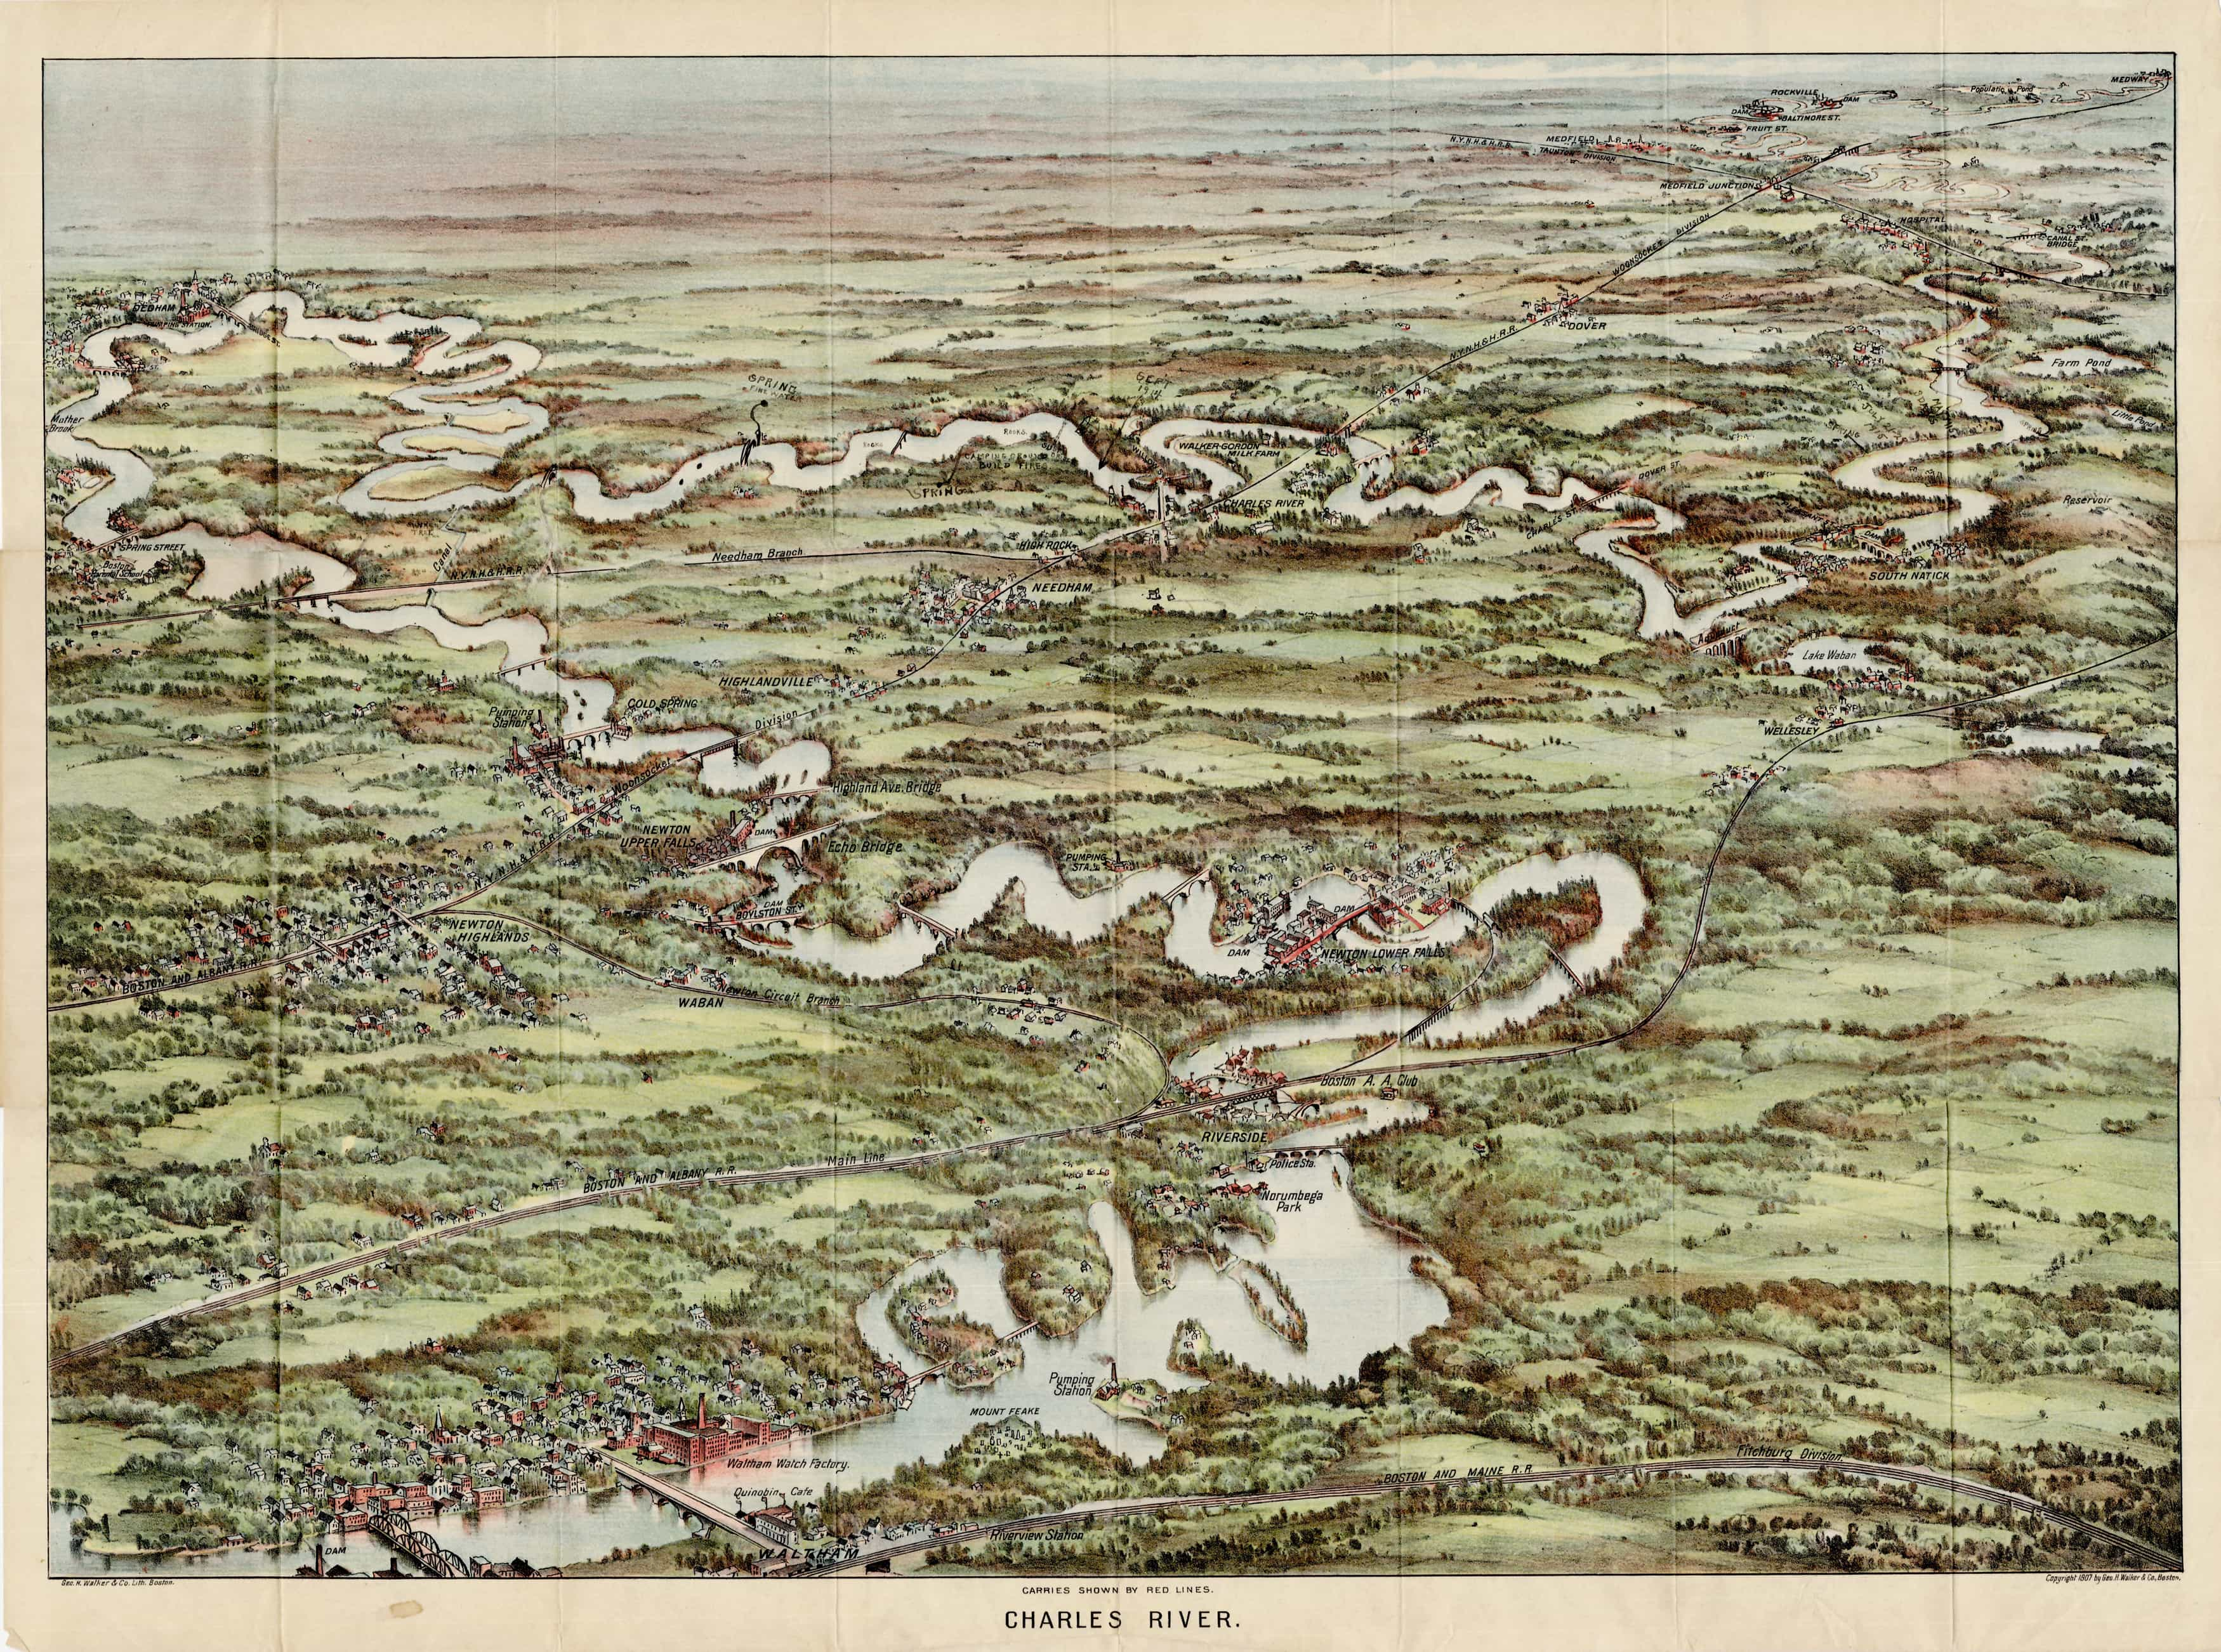 1907 birds-eye view of the Charles River, annotated by an early user on